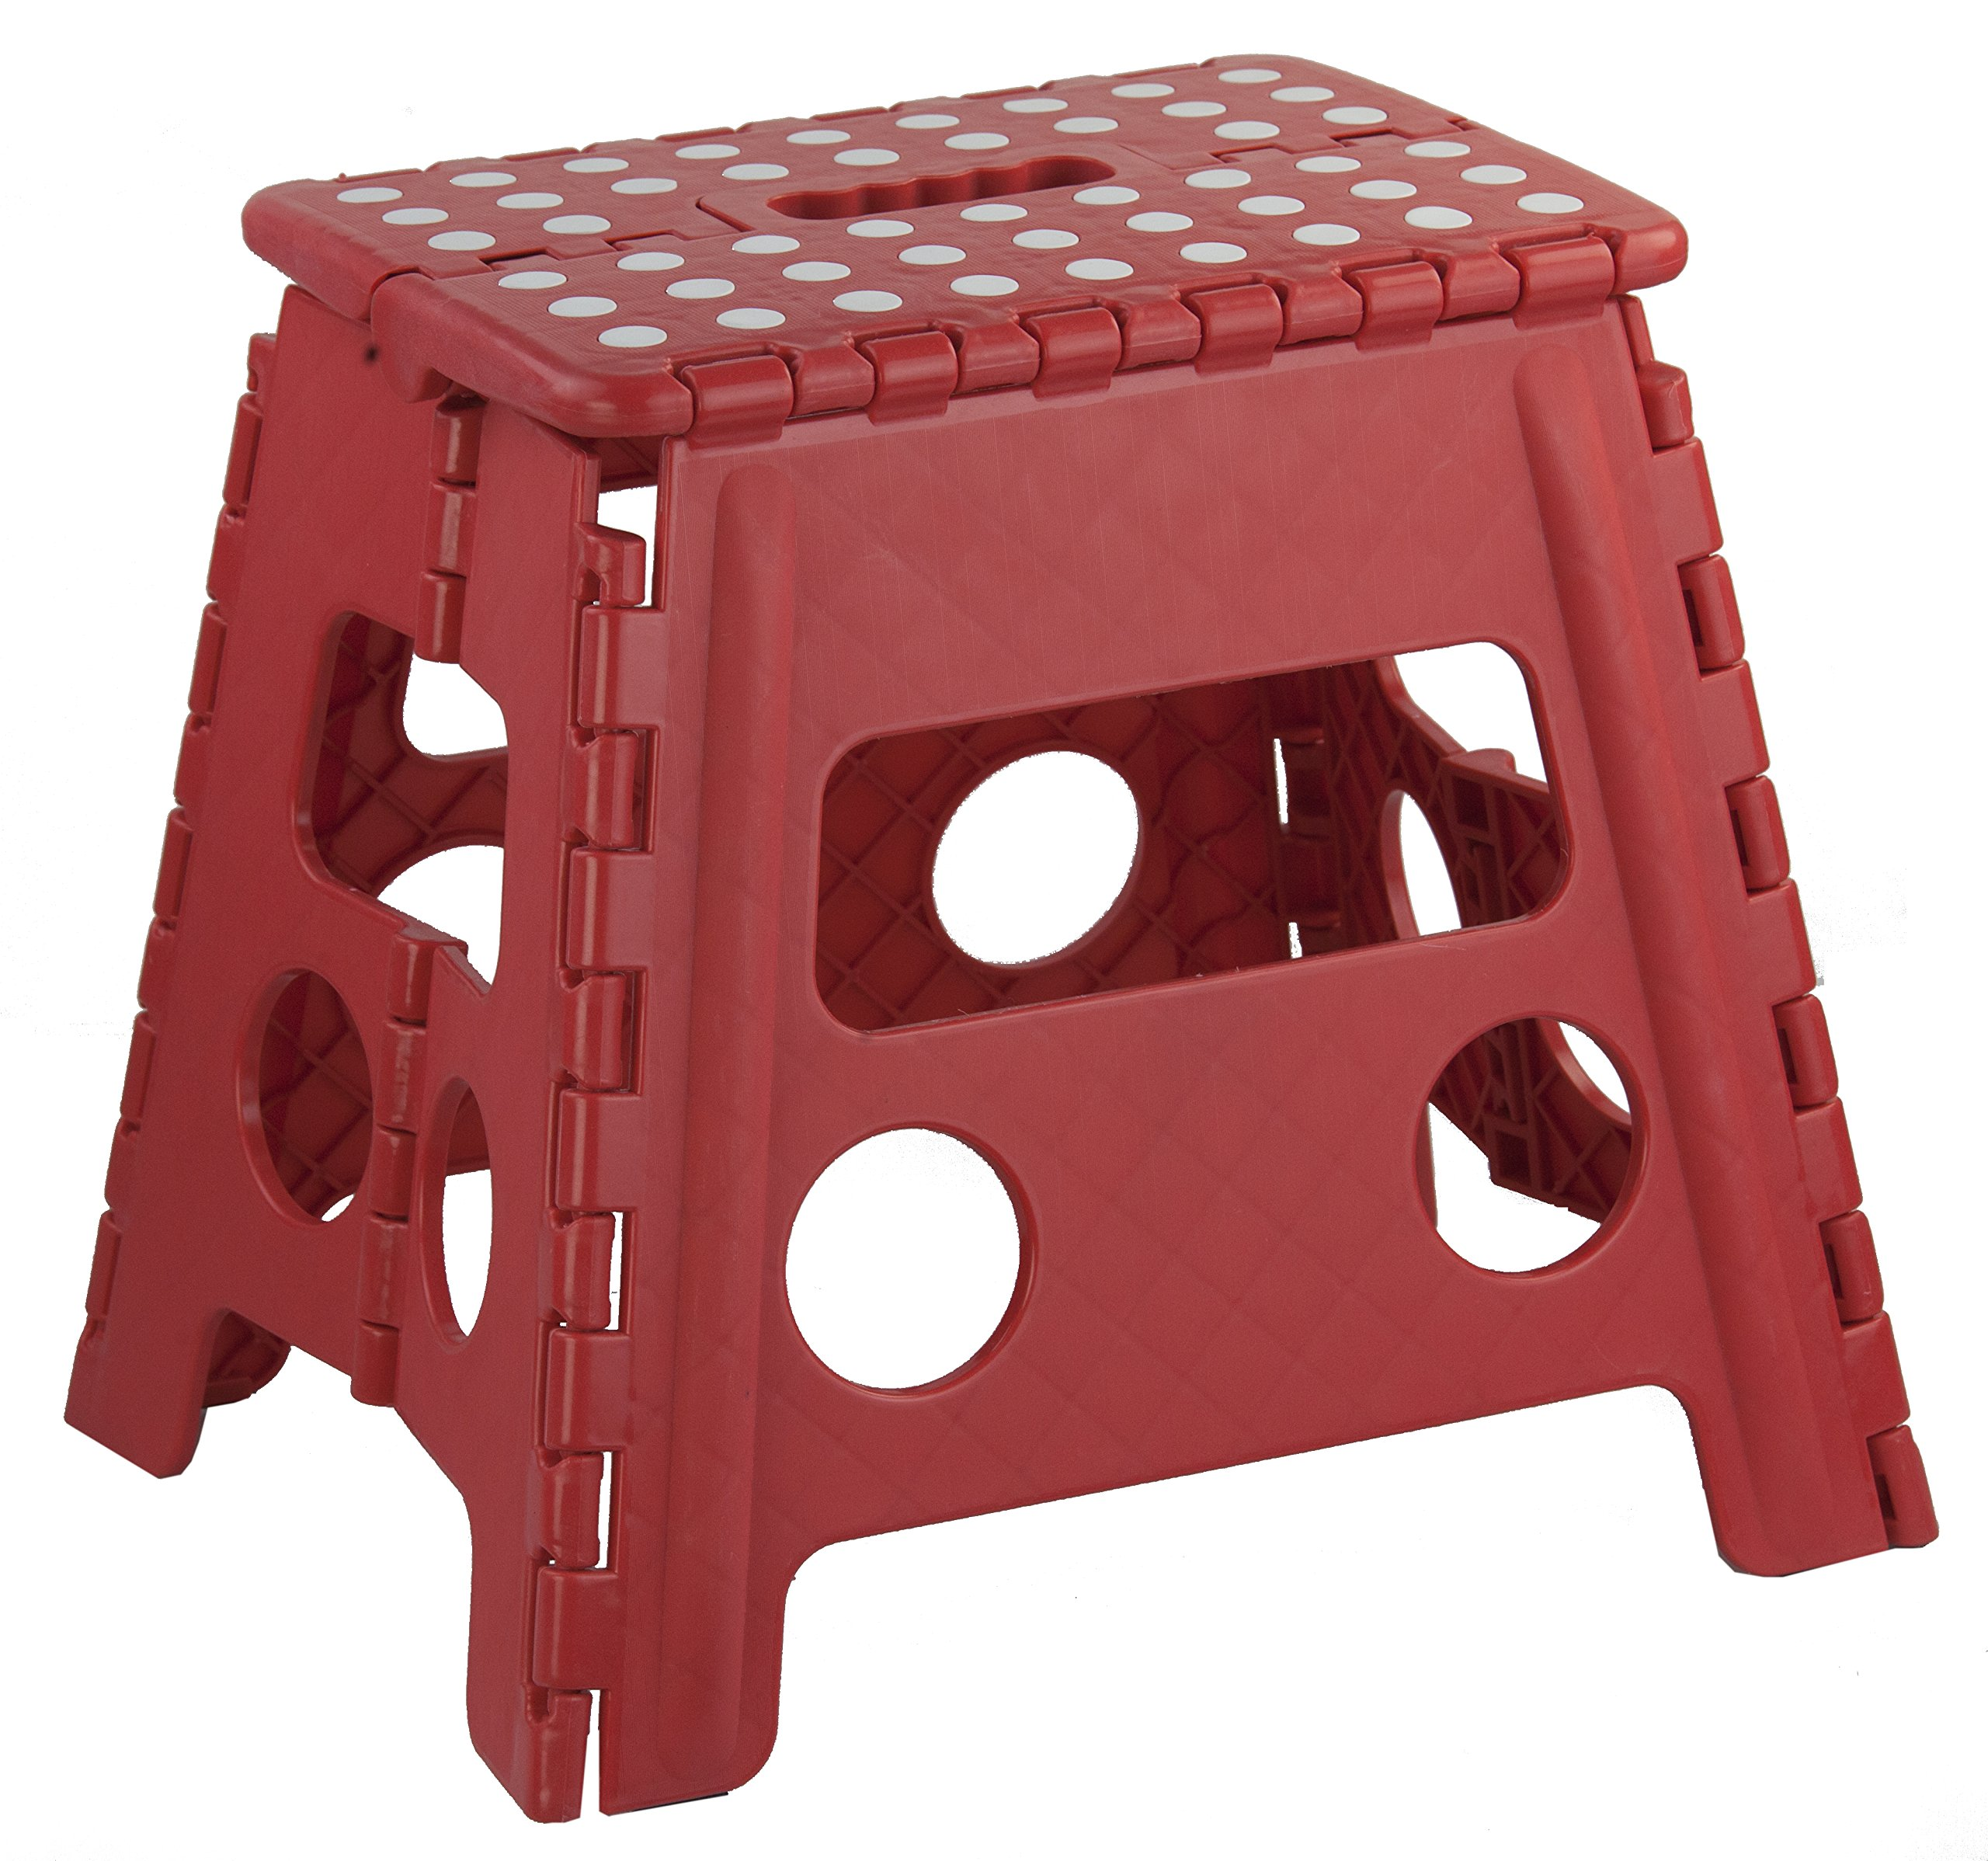 Home Basics FS49038-Red Folding Kids Step Stool with Non-Slip Dots, Large, Red